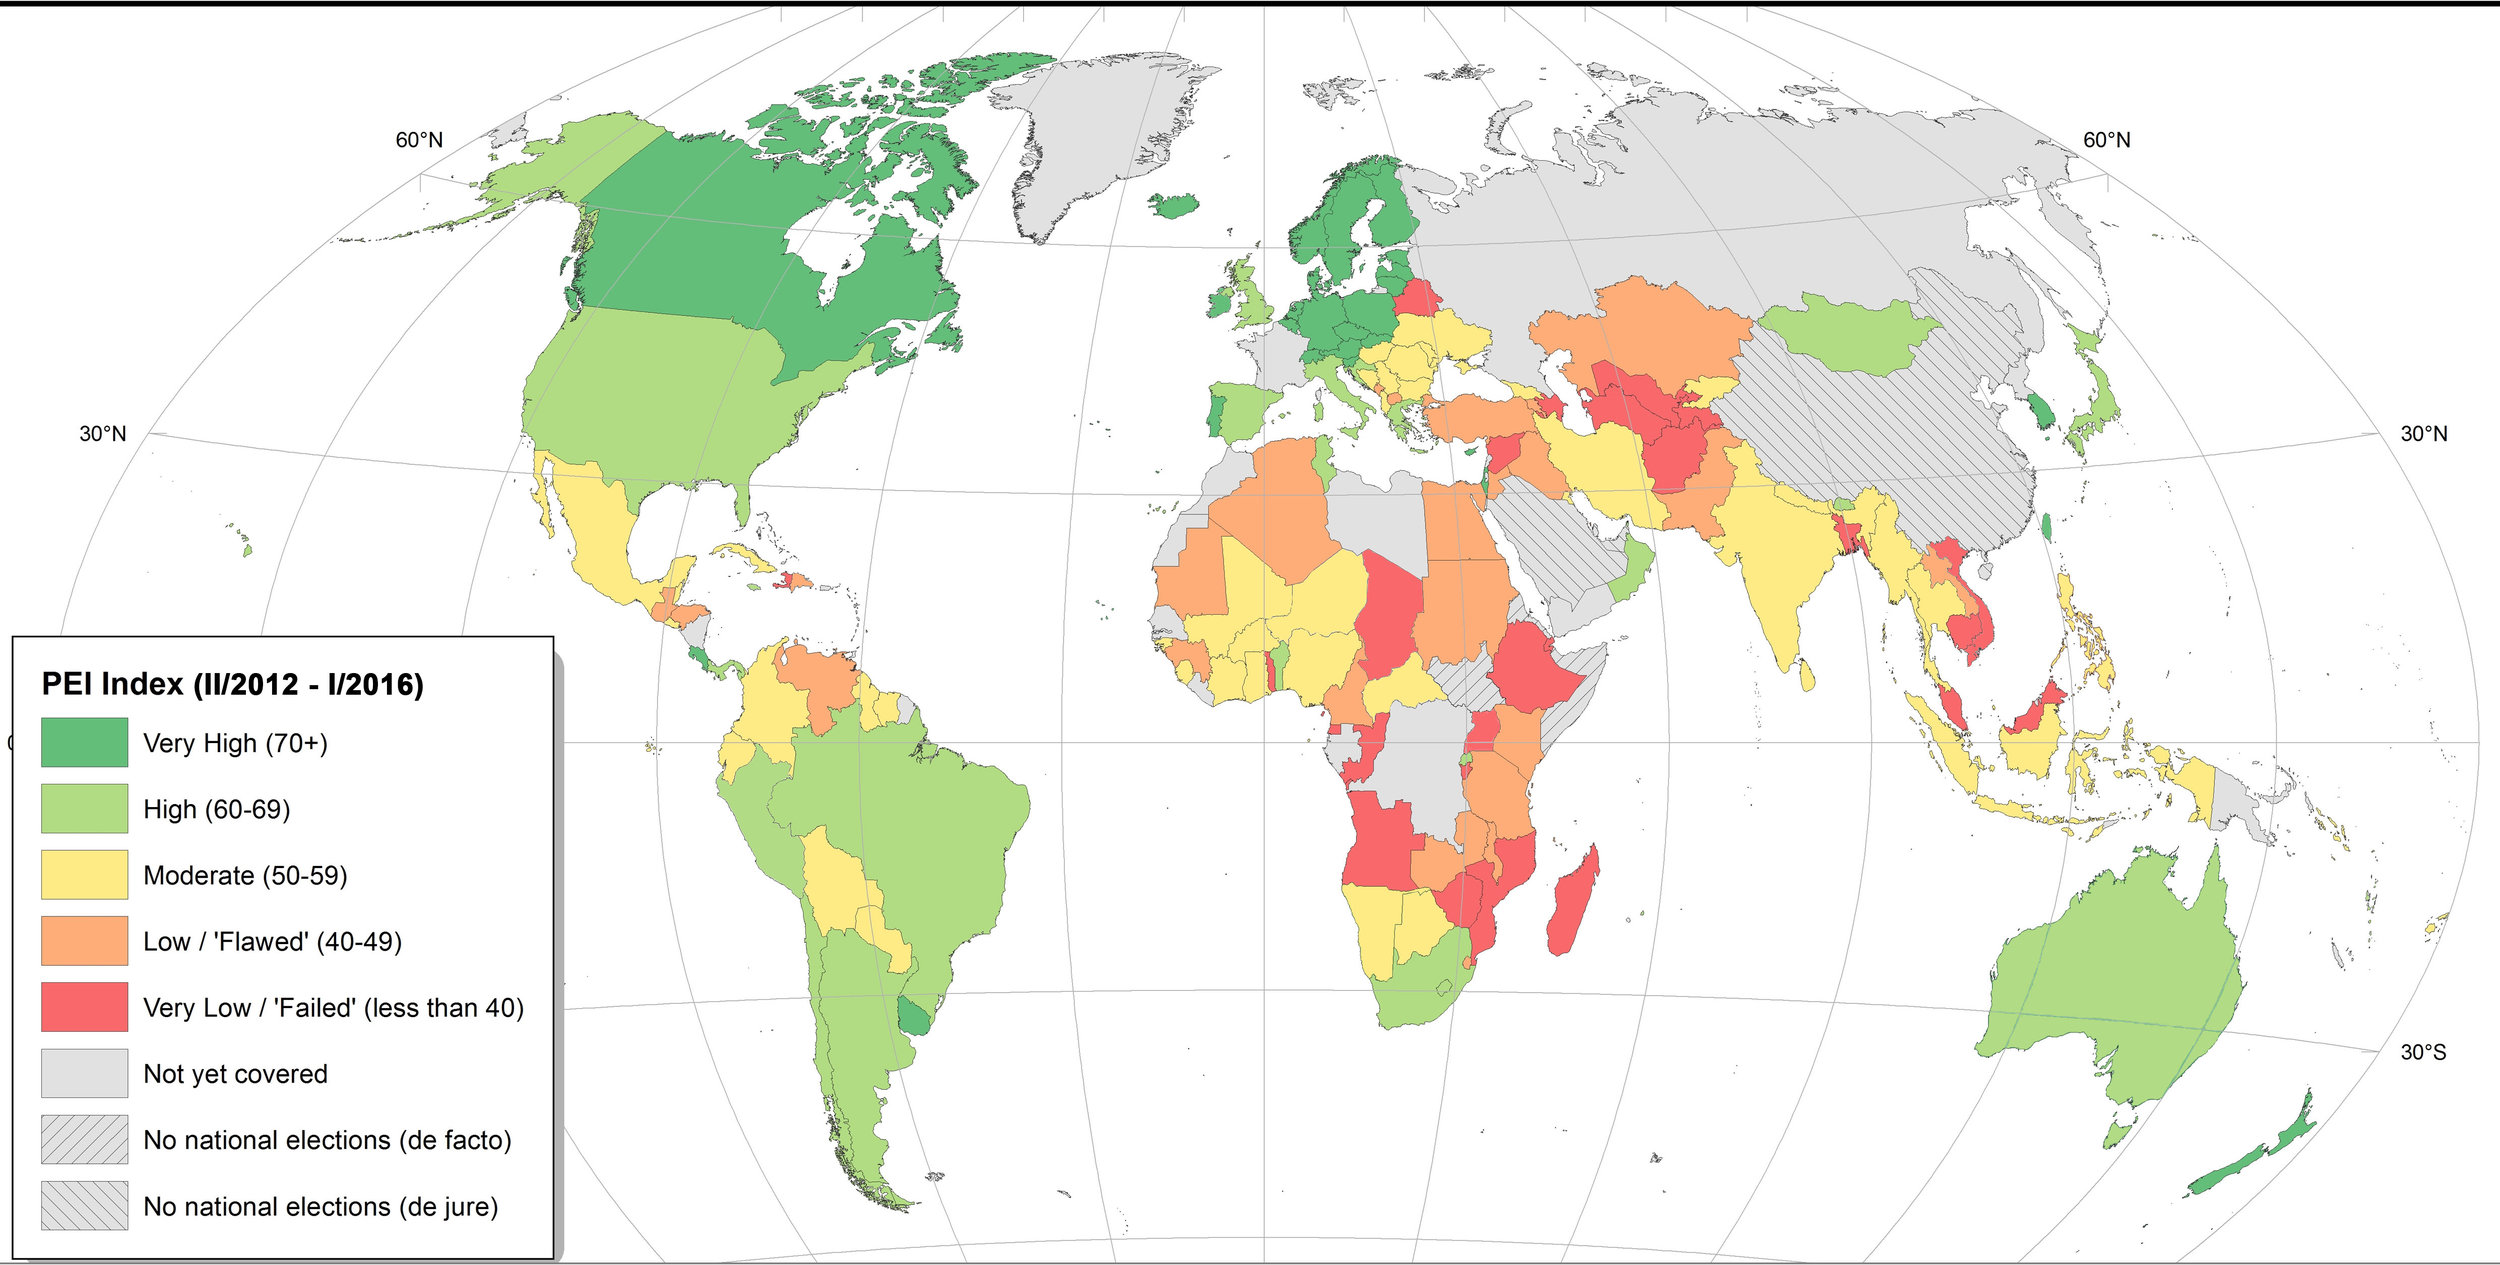 Global Map of Perceptions of Electoral Integrity (PEI 4.5)